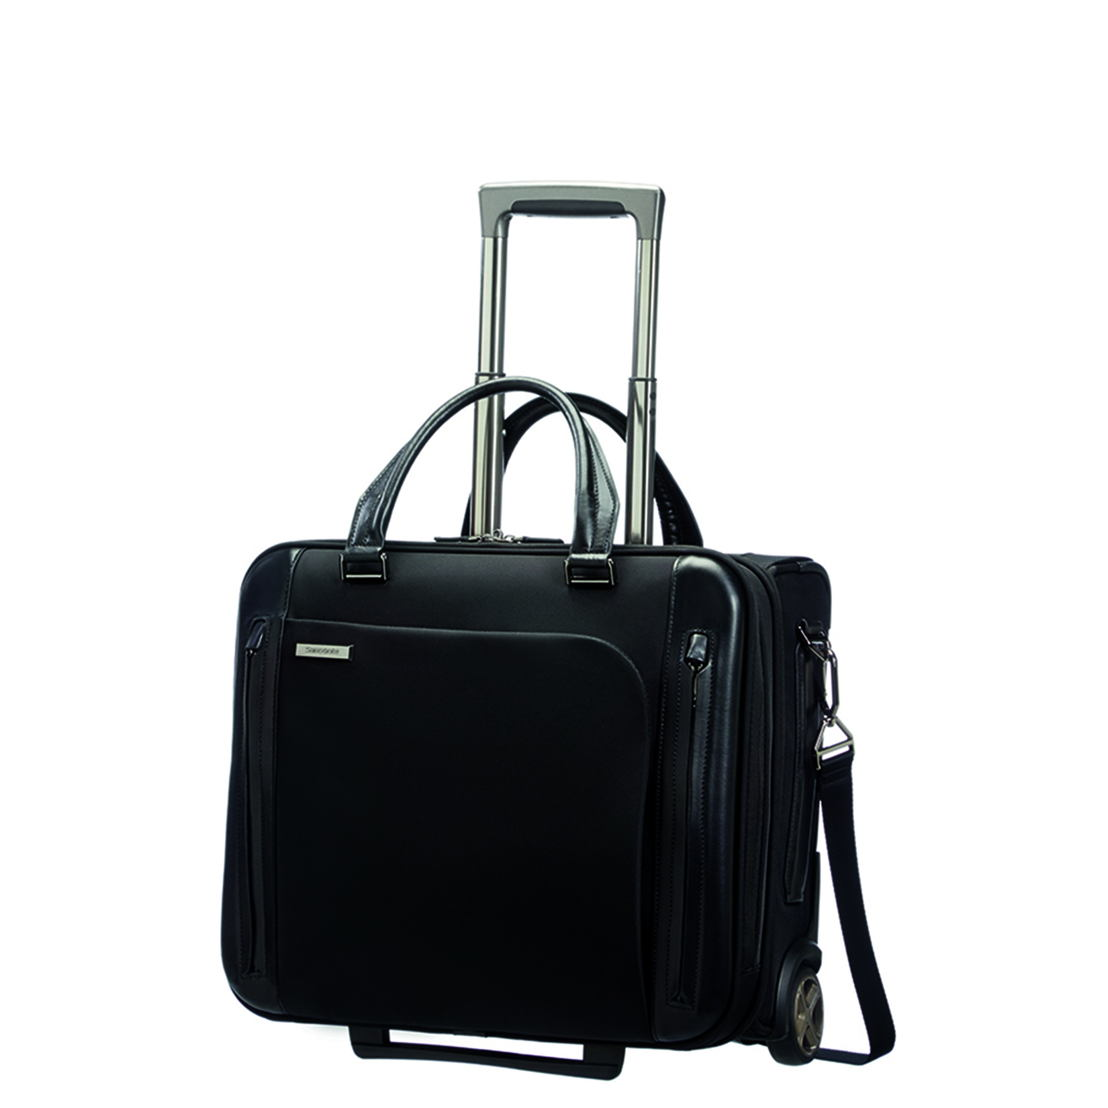 Samsonite Business Tech Rolling Tote Black à partir de 299€